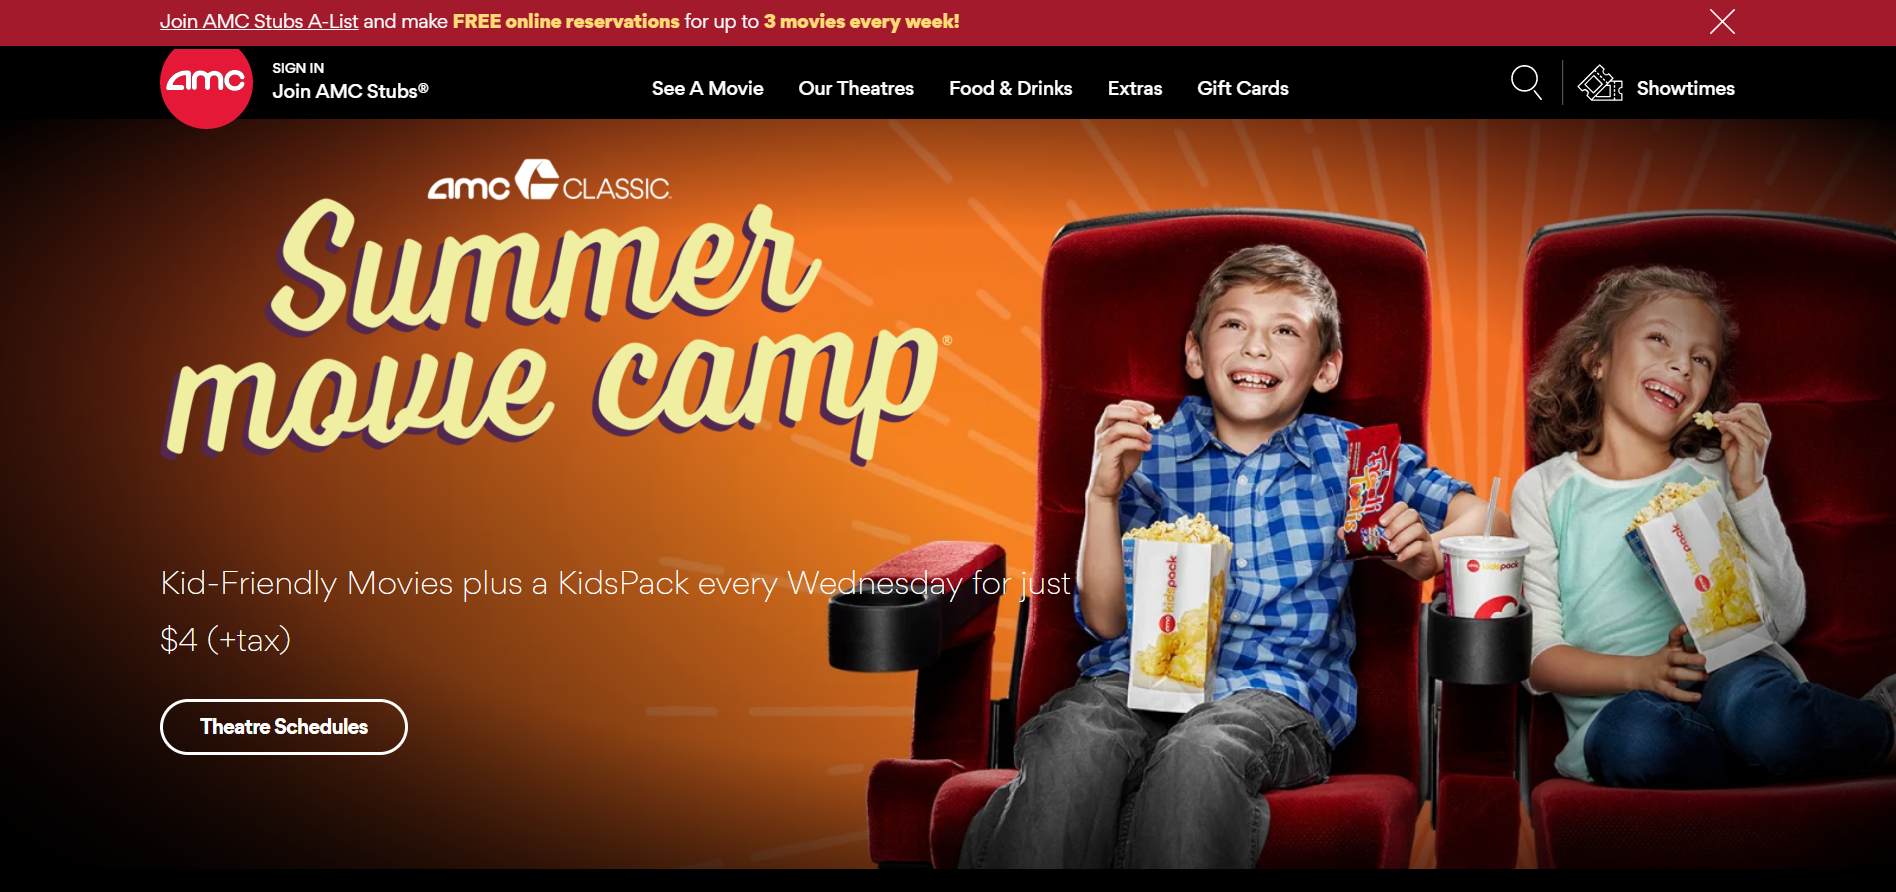 AMC launches $4 deal for kids every Wednesday this summer!